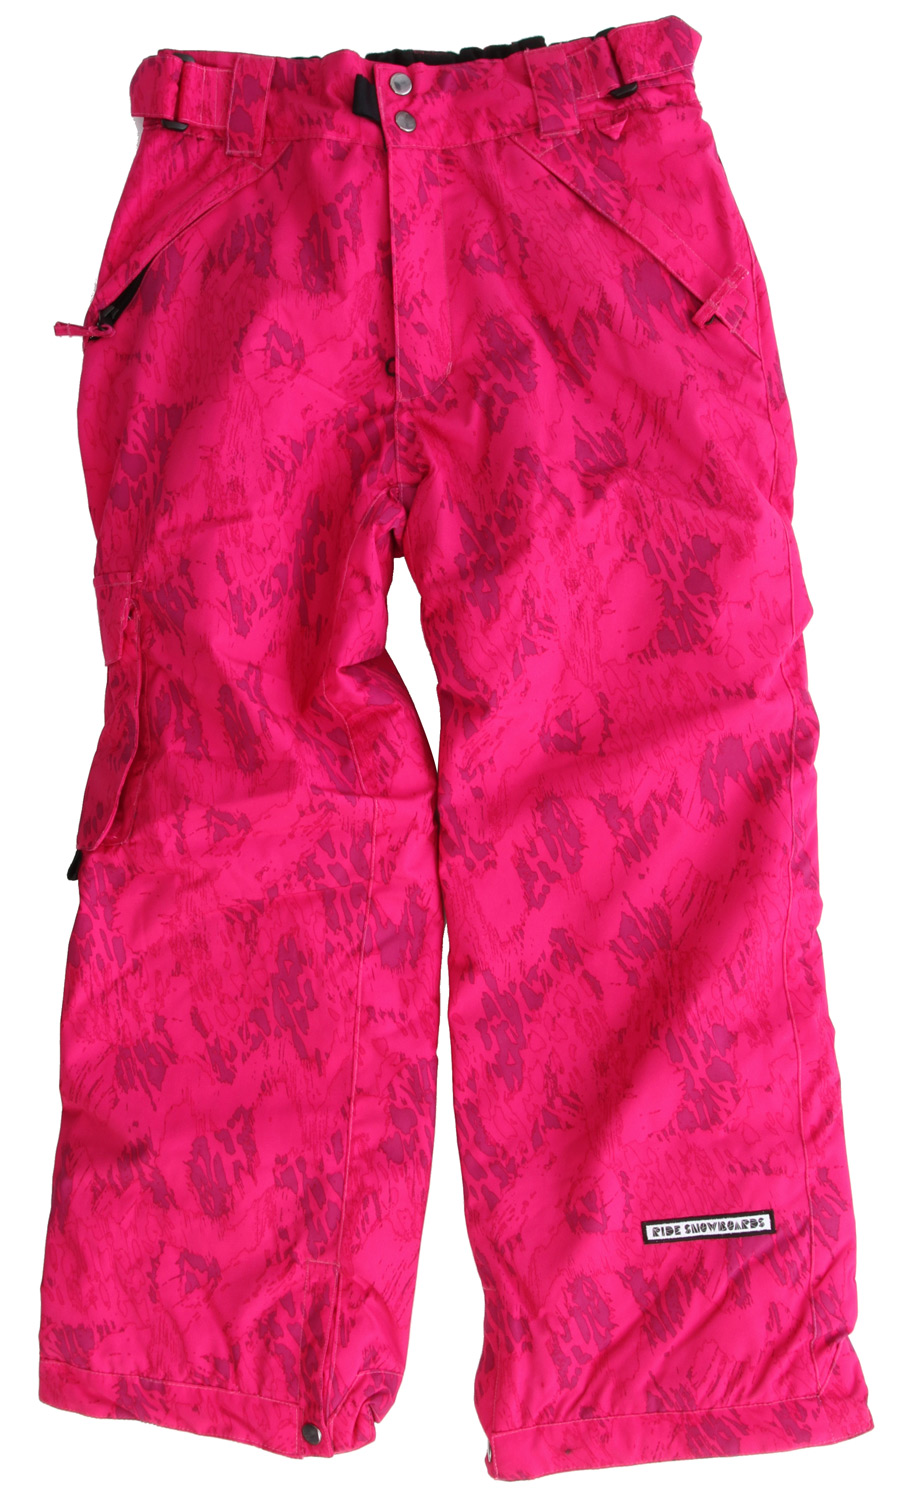 "Snowboard The Ride Dart youth snowboard pant is built tough with a 5k/5k waterproof breathable rating, critically taped seams and an 80g Poly Insulation so your up-and-comer stays warm and dry, up until last chair!Key Features of the Ride Dart Snowboard Pants: 5,000mm Waterproof 5,000g Breathability 80g Poly Insulation with Taffeta Lining Side Pocket and Back Pockets Growth Seams at the Pant Hem That Extend out 1 1/2"" in Length Adjustable, Double-Snap Elastic Waist Closure Velvety Tricot Inner Waist, Rear and Fly Shred-Free Slightly Higher Pant Leg Back Boot Gaiters Lift Ticket Self-Fabric Loop Kids' snowboard pant with front Micro-Fleece Lined Toaster Pockets - $70.95"